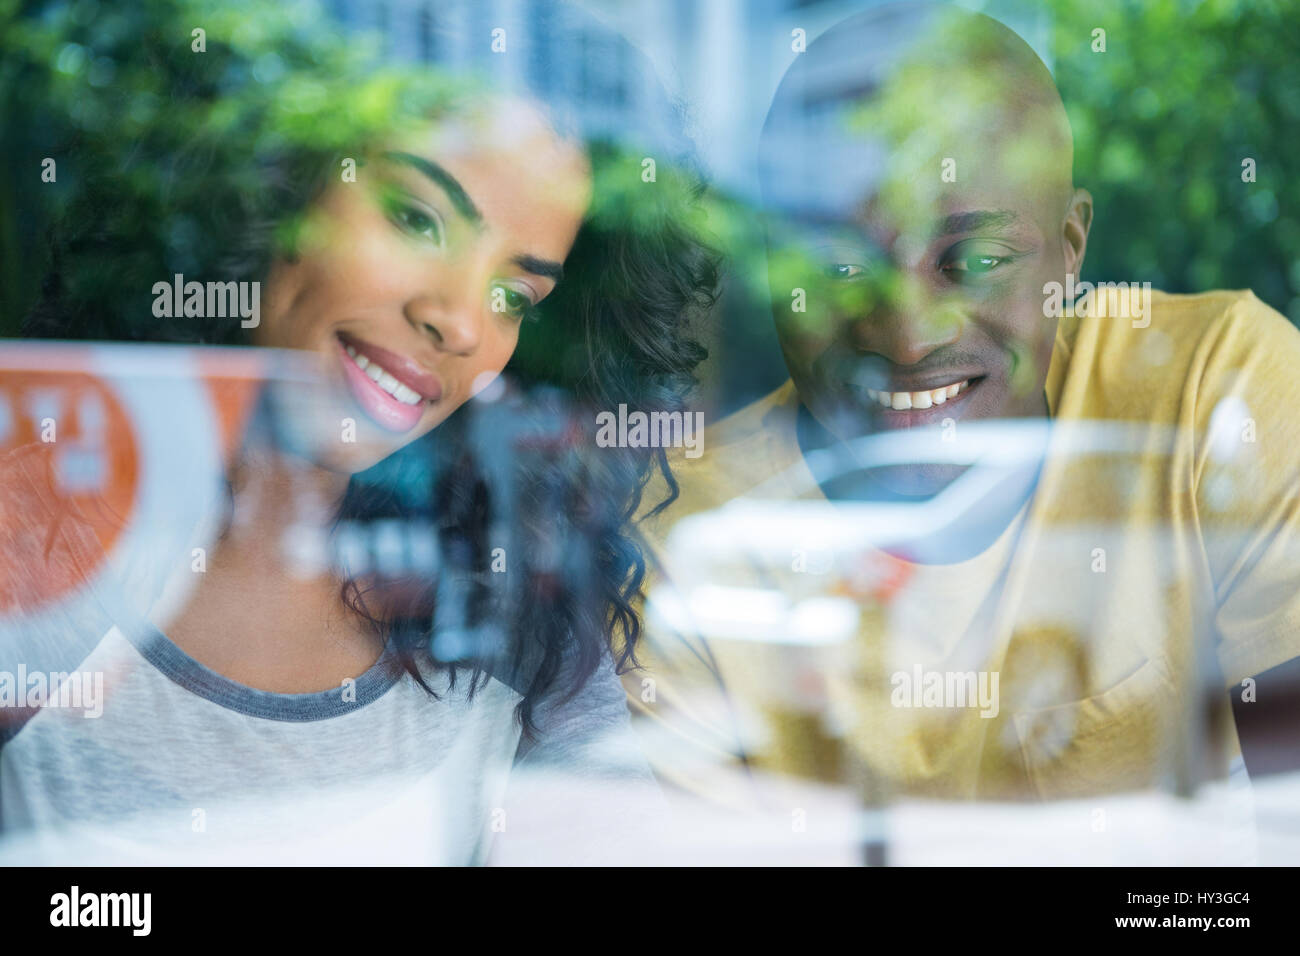 Smiling young couple in coffee shop seen through window - Stock Image